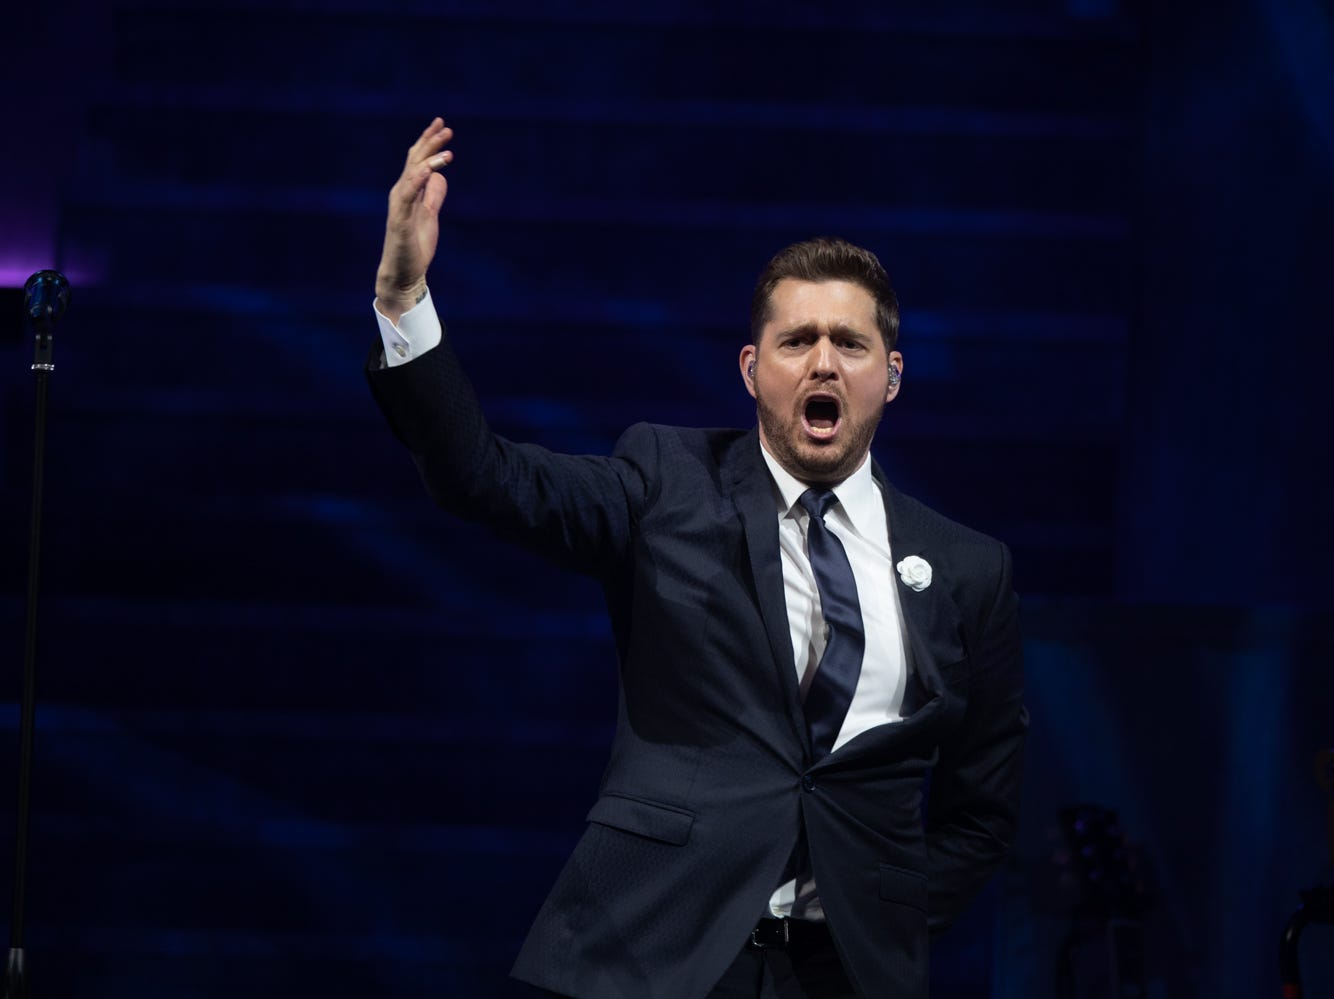 Singer Michael Bublé performs at Talking Stick Resort Arena in Phoenix on March 29, 2019.